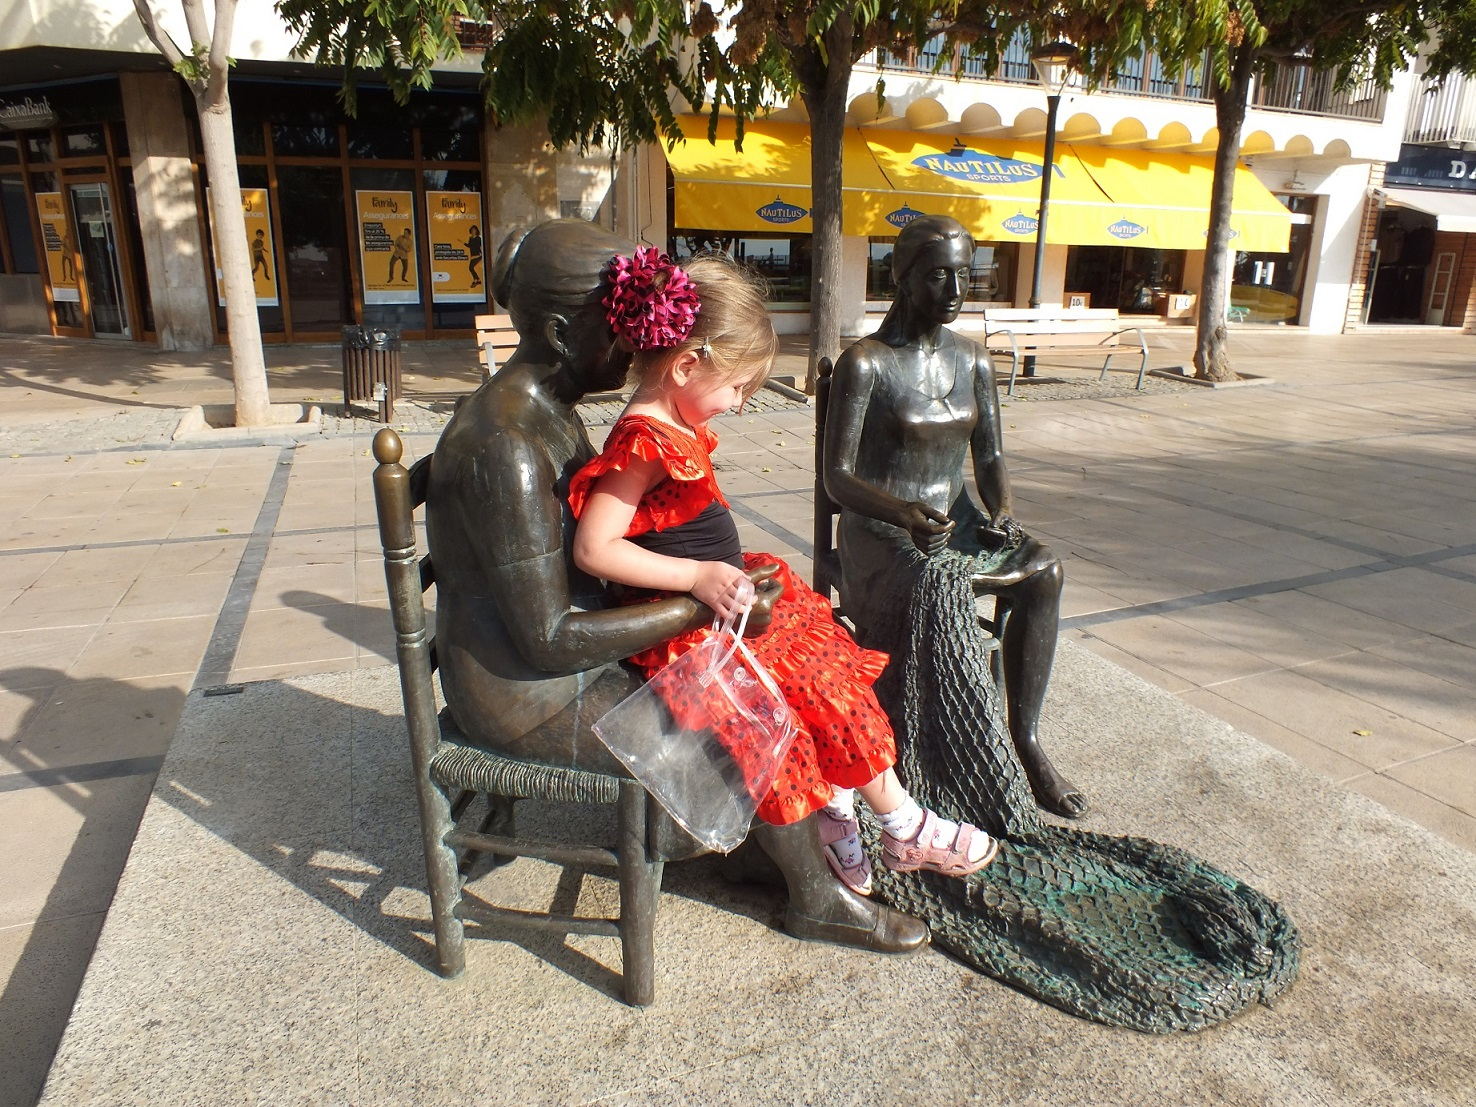 Cambrils monument to fishers wives